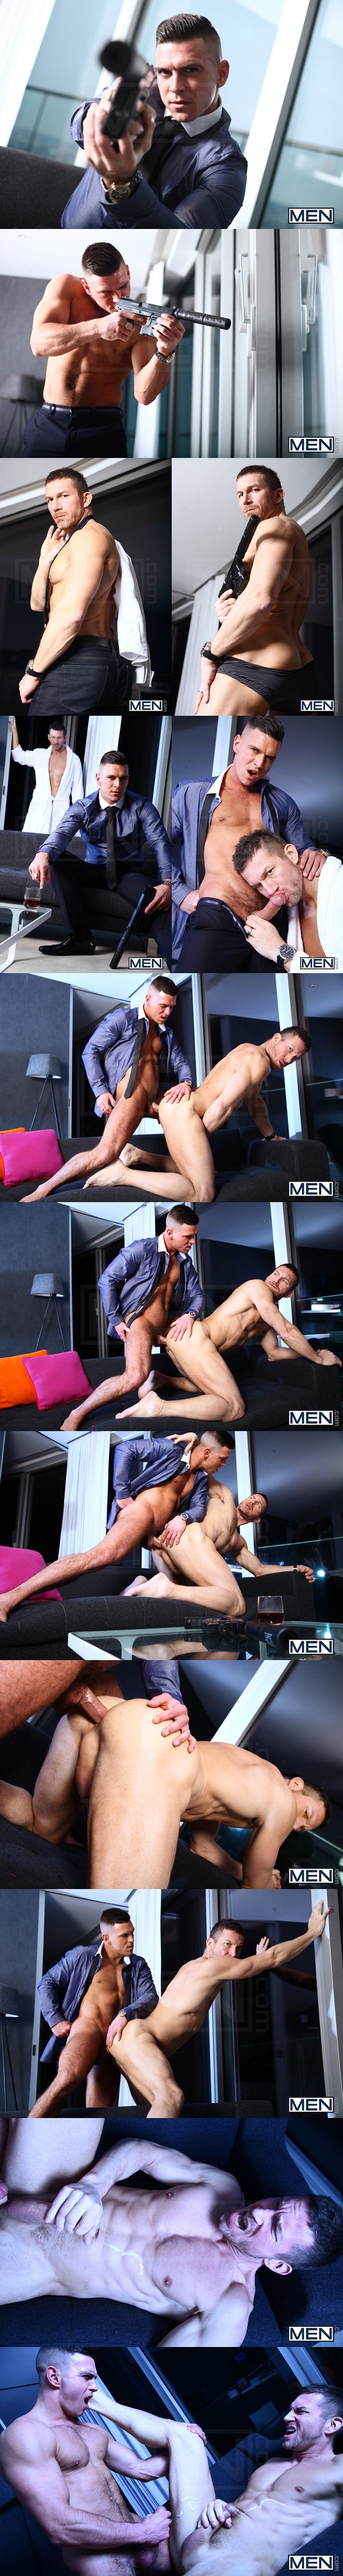 Big-dicked Paddy O'Brian slams muscle daddy Tomas Brand in Secret Agent Part 1 at Menofuk 01